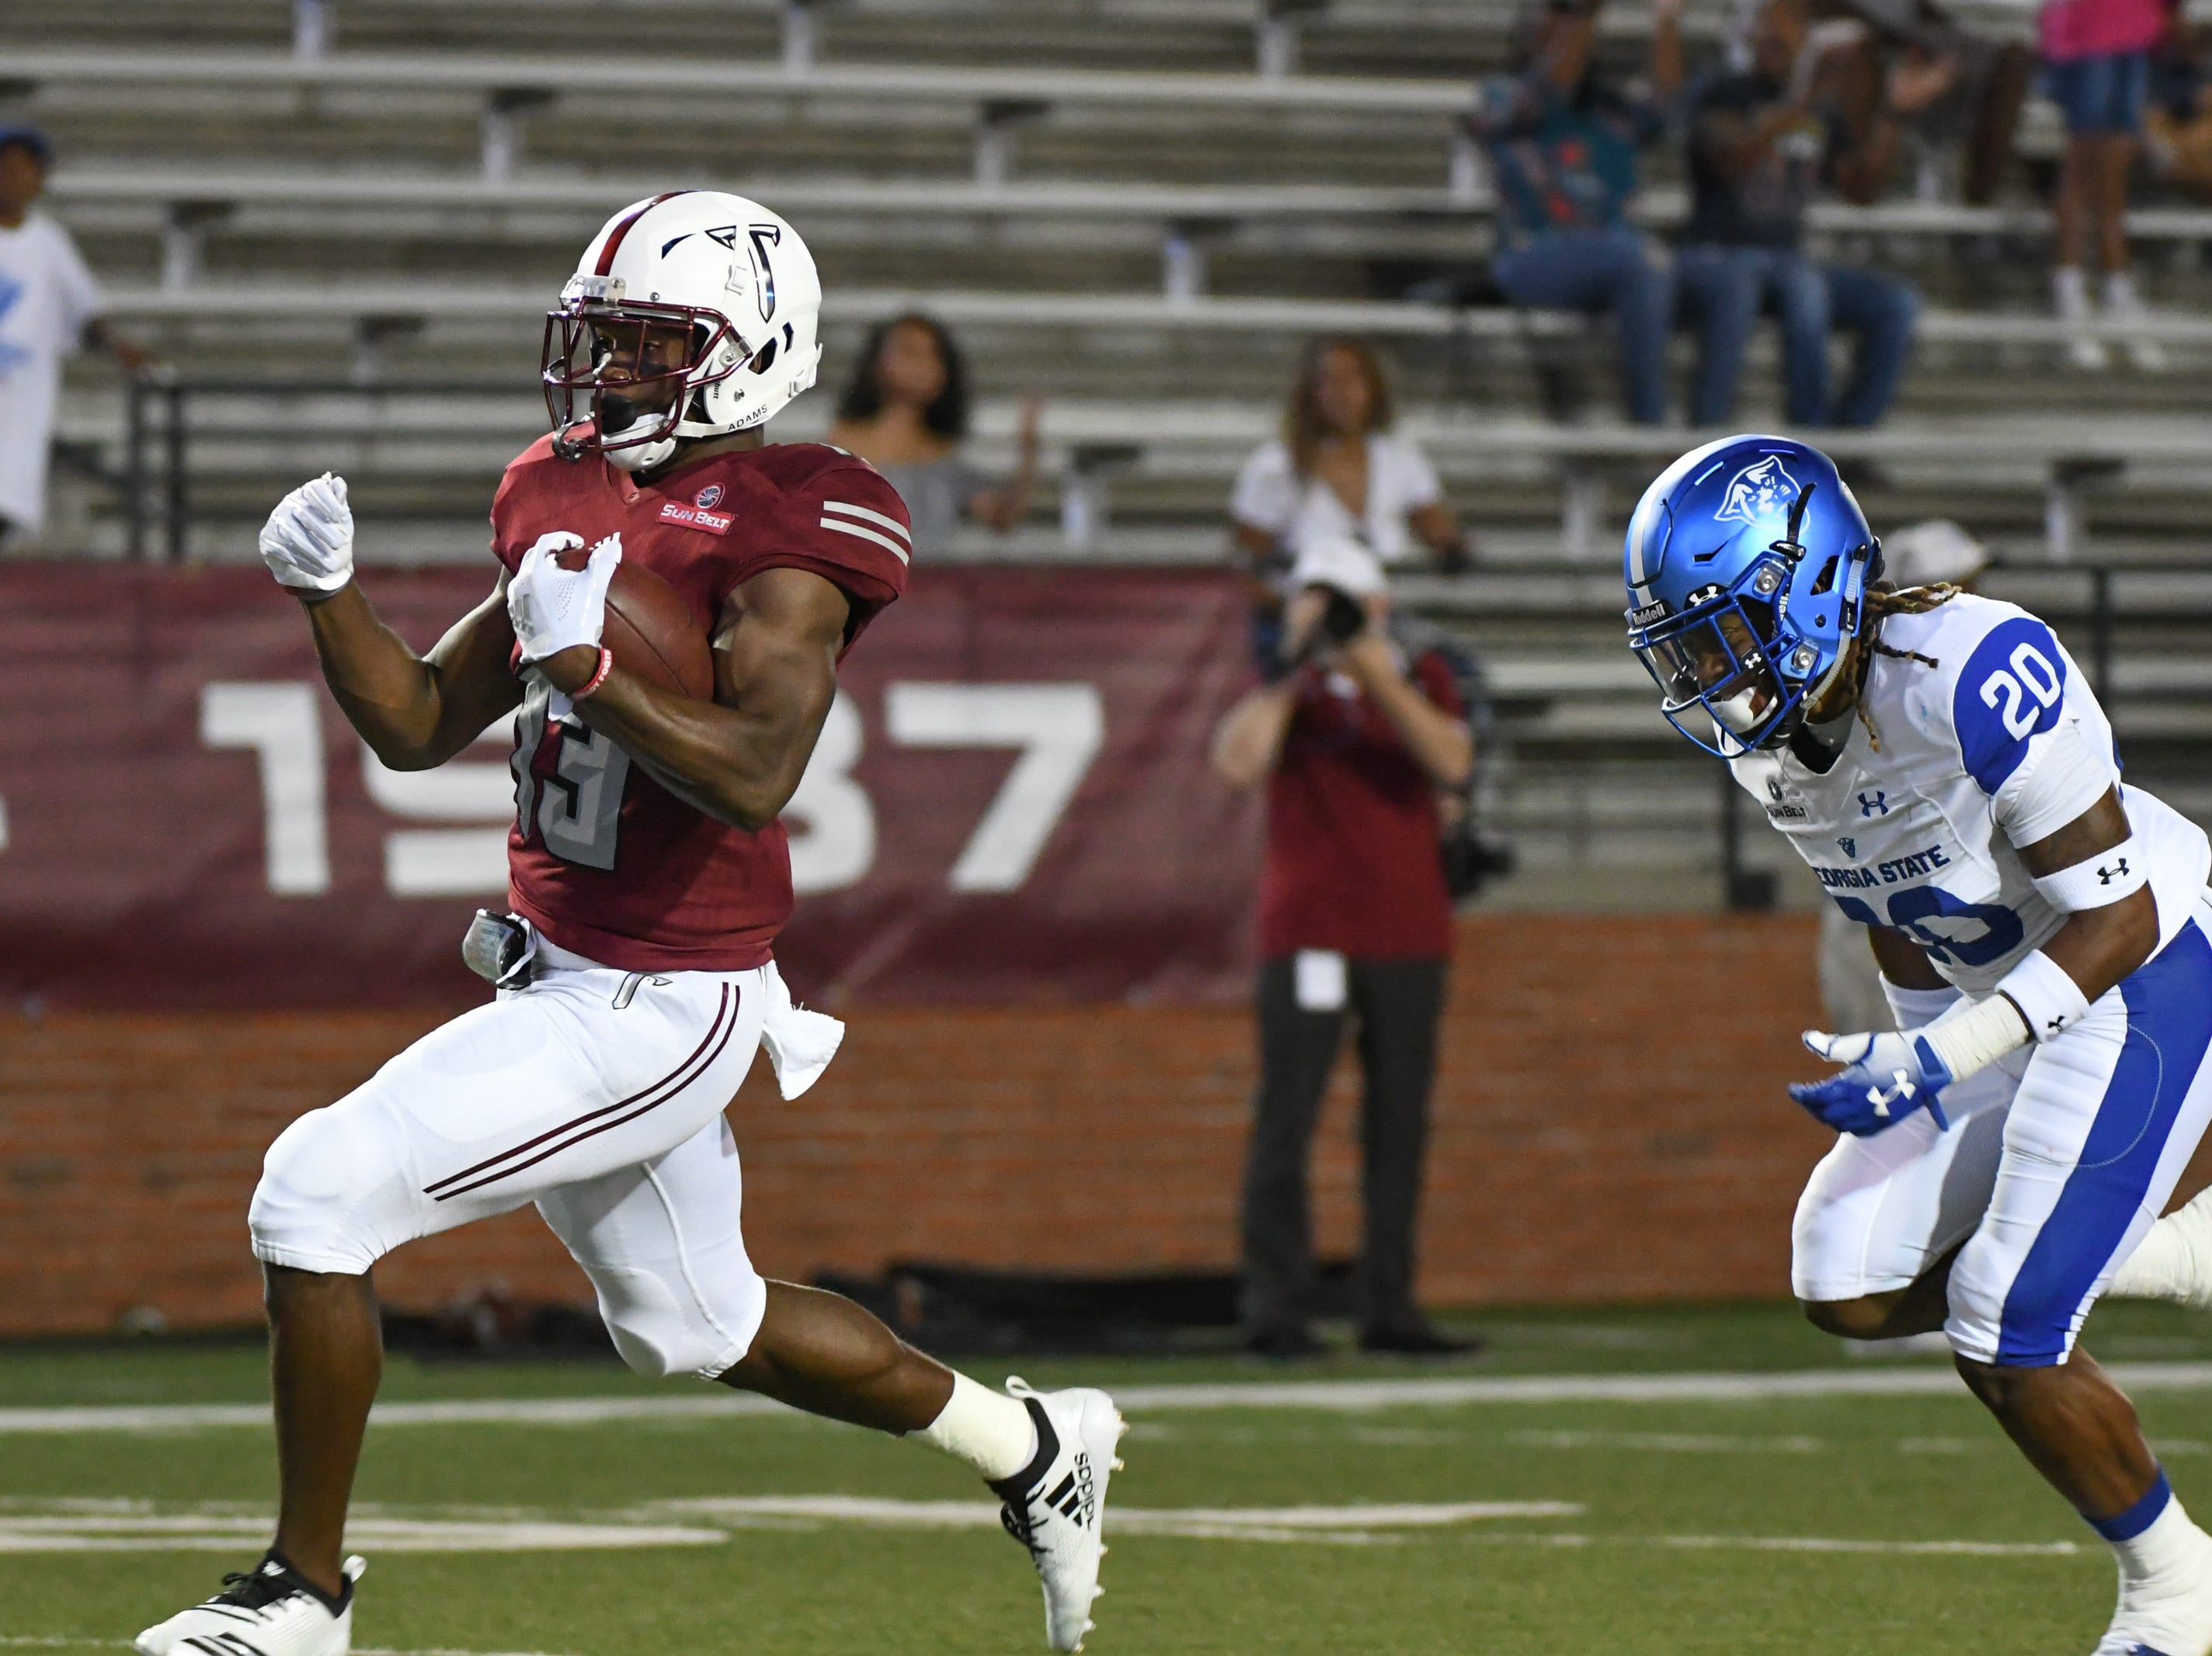 Troy Trojans wide receiver Tray Eafford (13) scores a touchdown against Georgia State at Veteran's Memorial Stadium in Troy, Ala., on Thursday, Oct. 4, 2018. (Chip Dillard/Special to the Montgomery Advertiser)